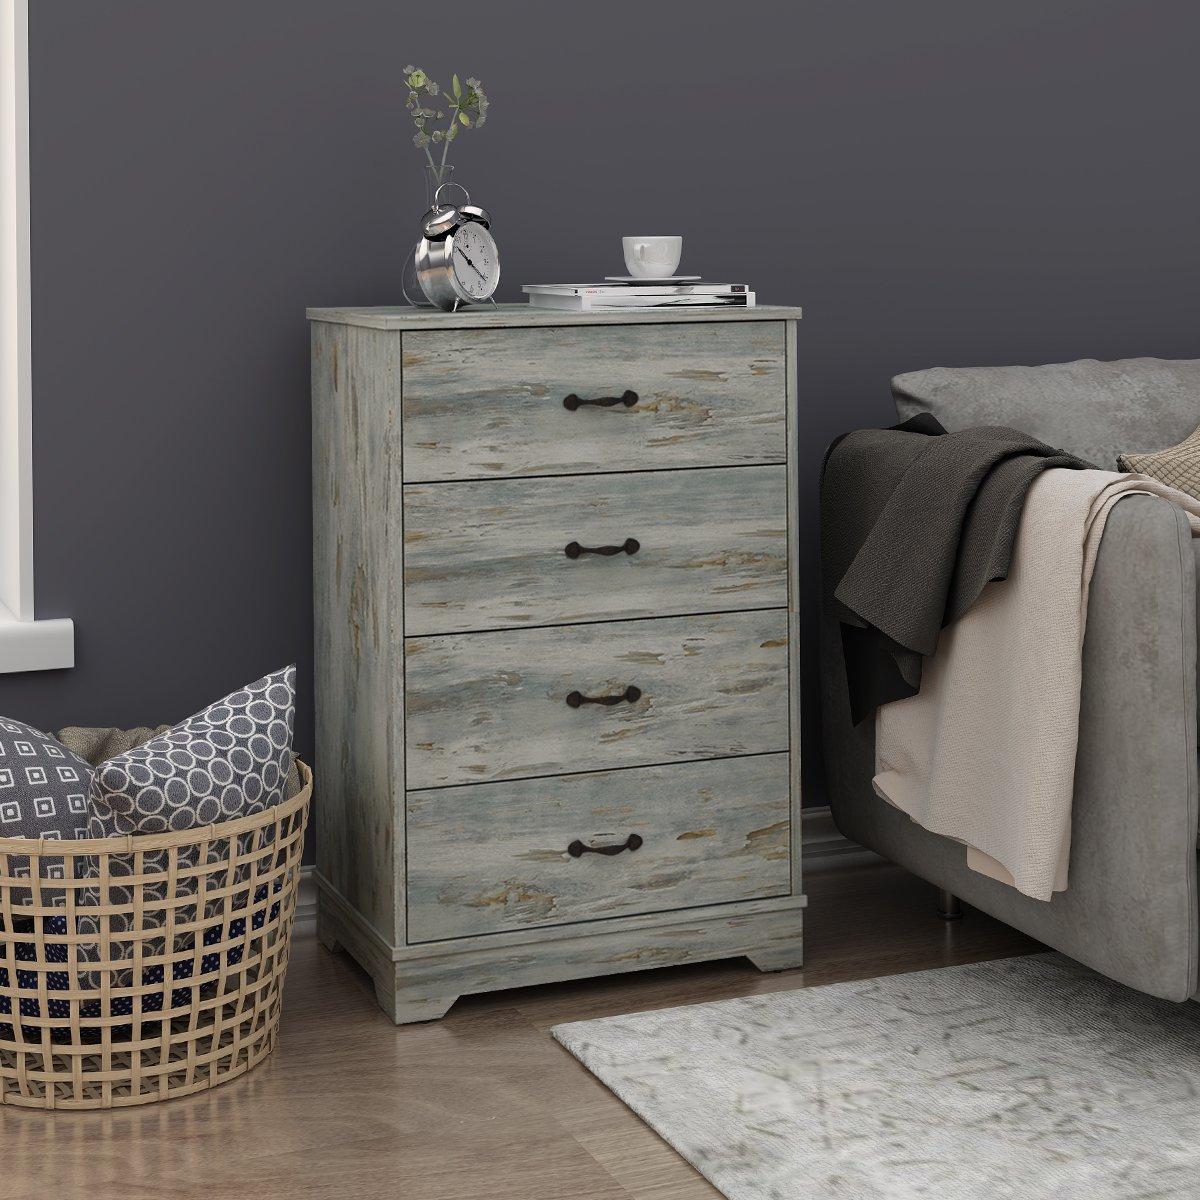 Modern 4 Drawer Wood Chest in Blue, Works as Dresser & Cabinet for Home & Office by DEVAISE